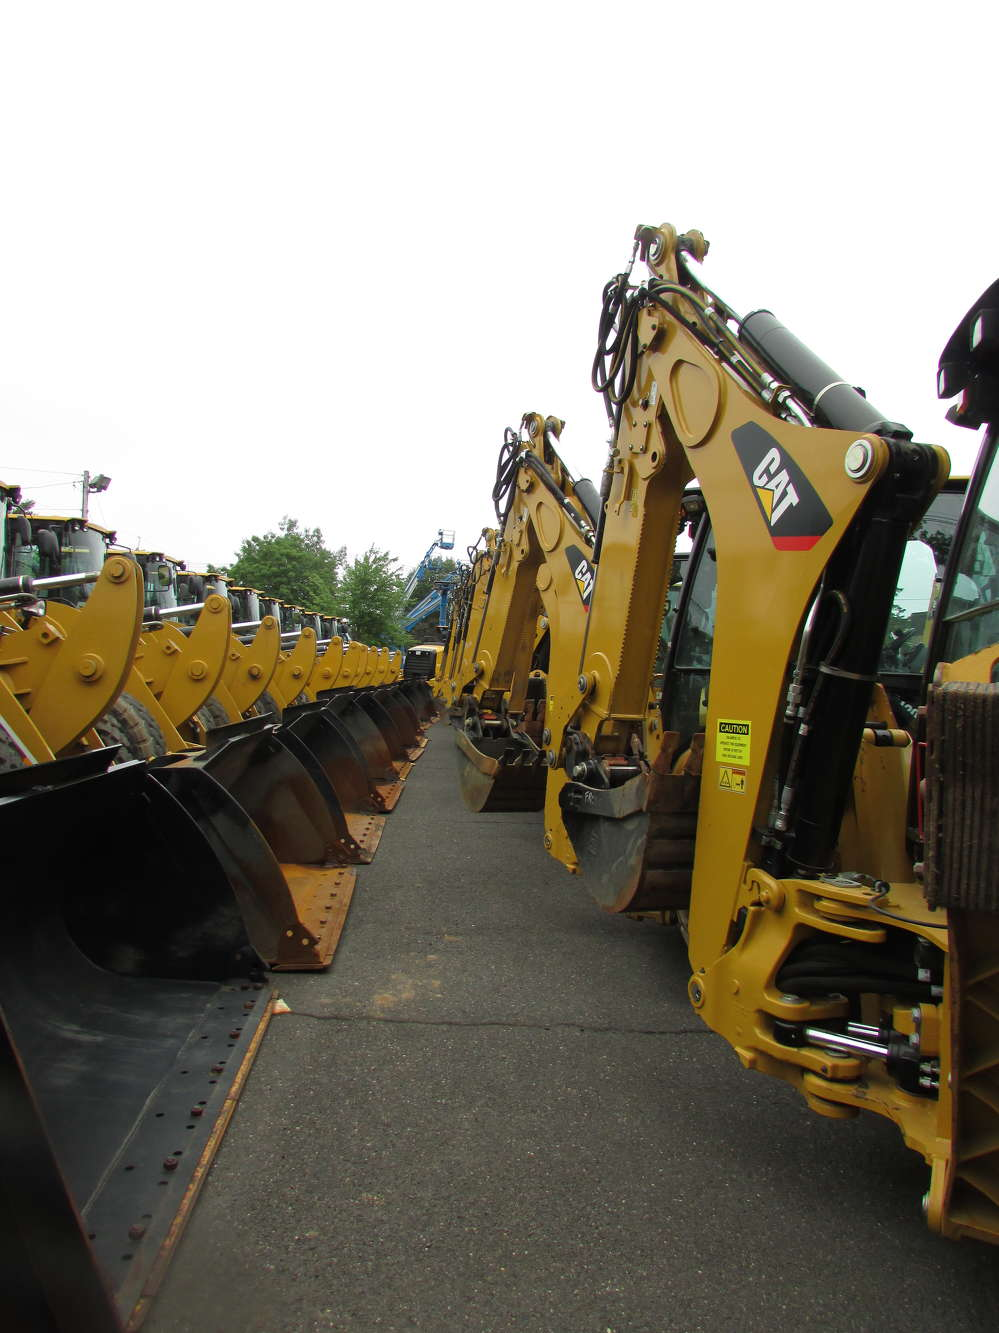 The Foley CAT One Day Sale featured a wide array of Caterpillar equipment offered at special pricing.